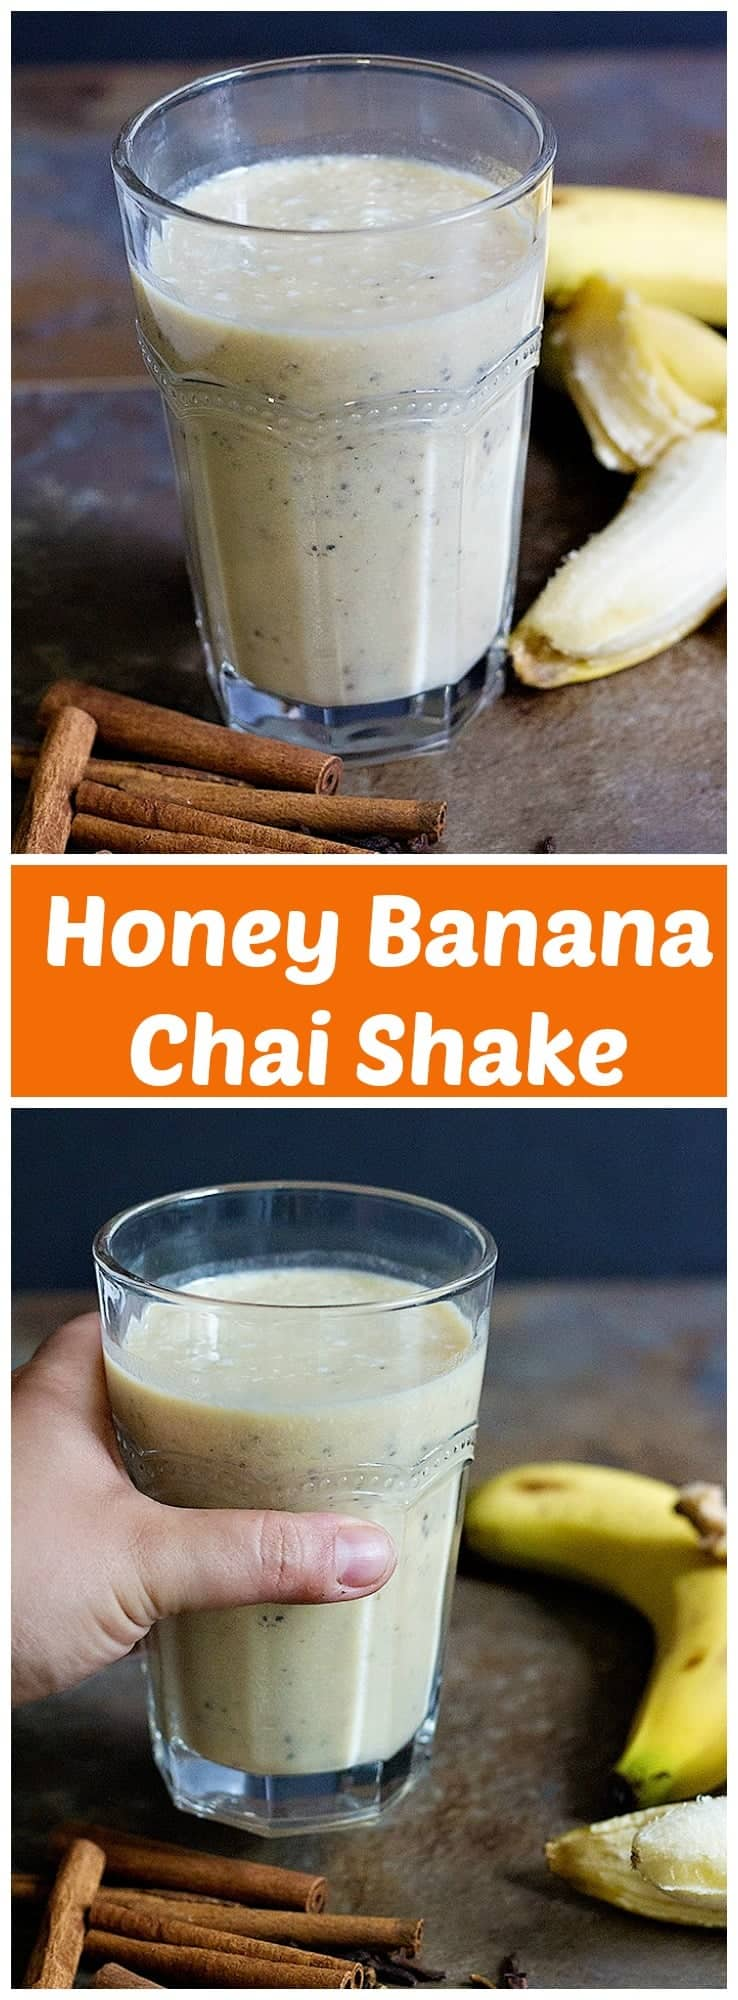 Start your morning with a lot of energy by making this Honey Banana Chai Shake. It's naturally sweetened and full of amazing flavors!